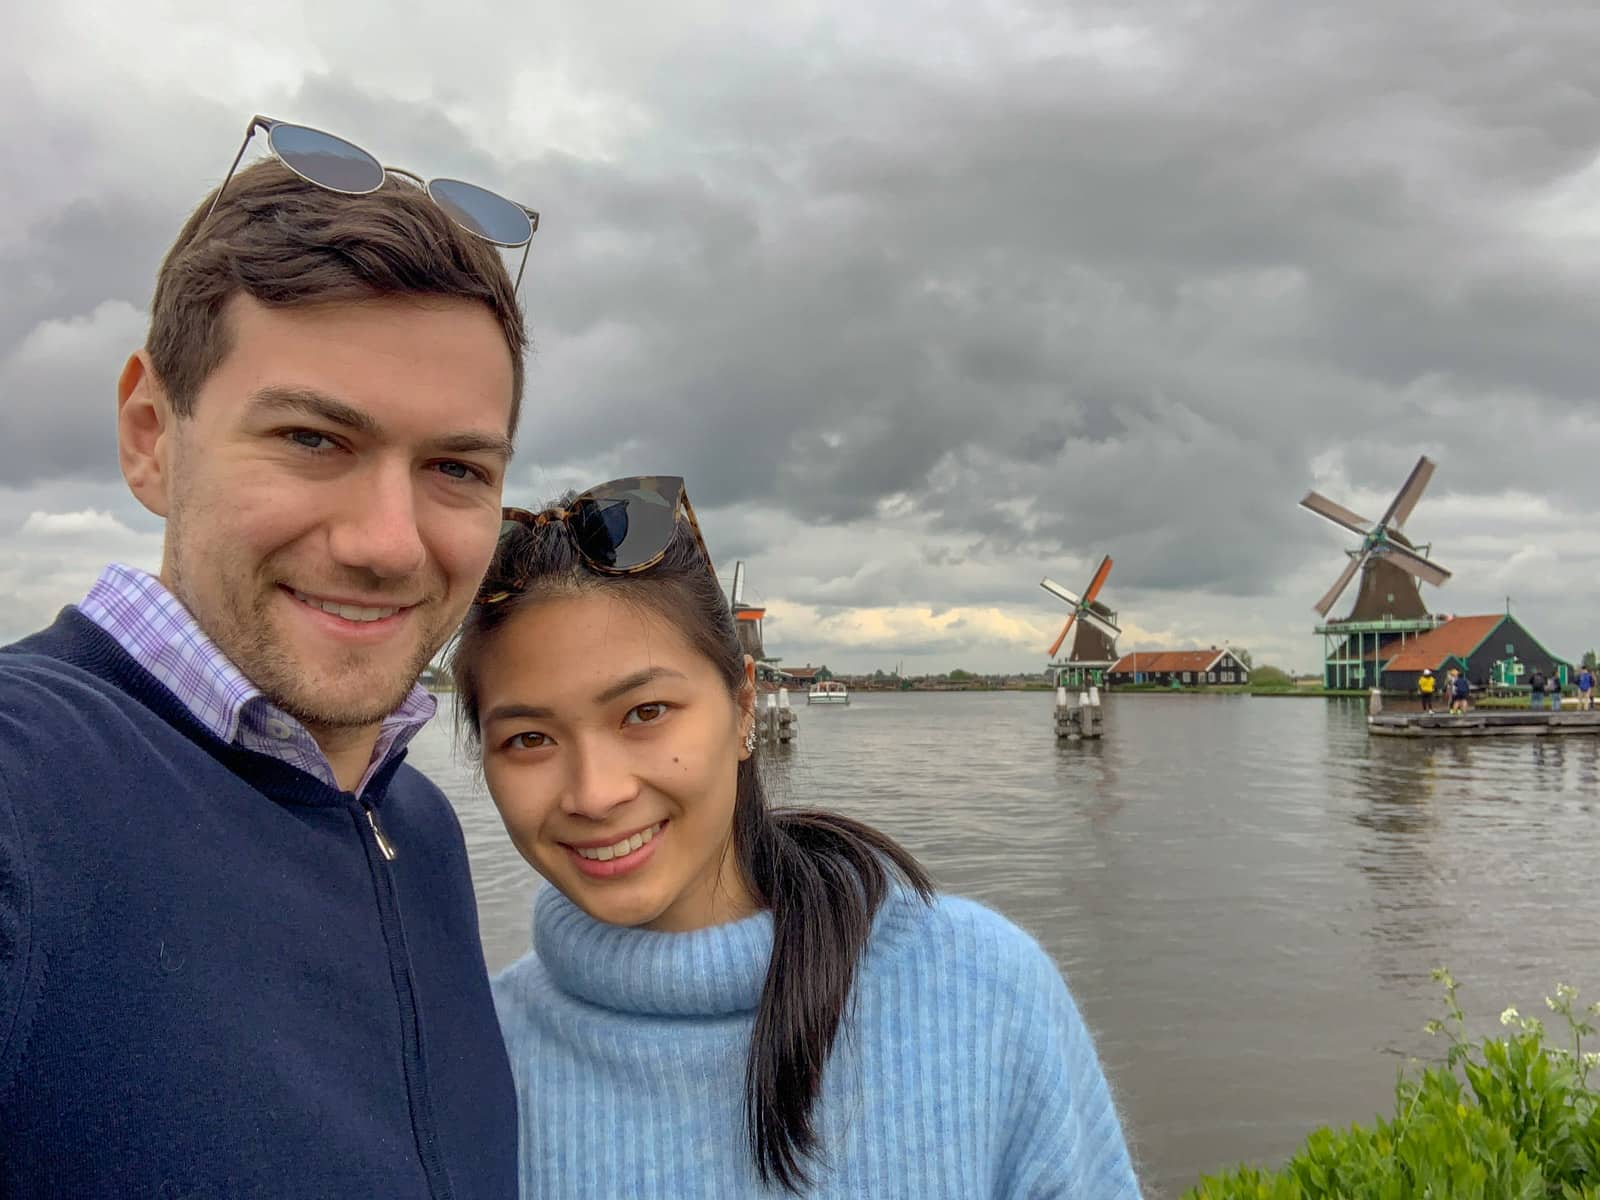 A man and woman taking a selfie in front of a river with Dutch windmills in the background. It is a very cloudy day